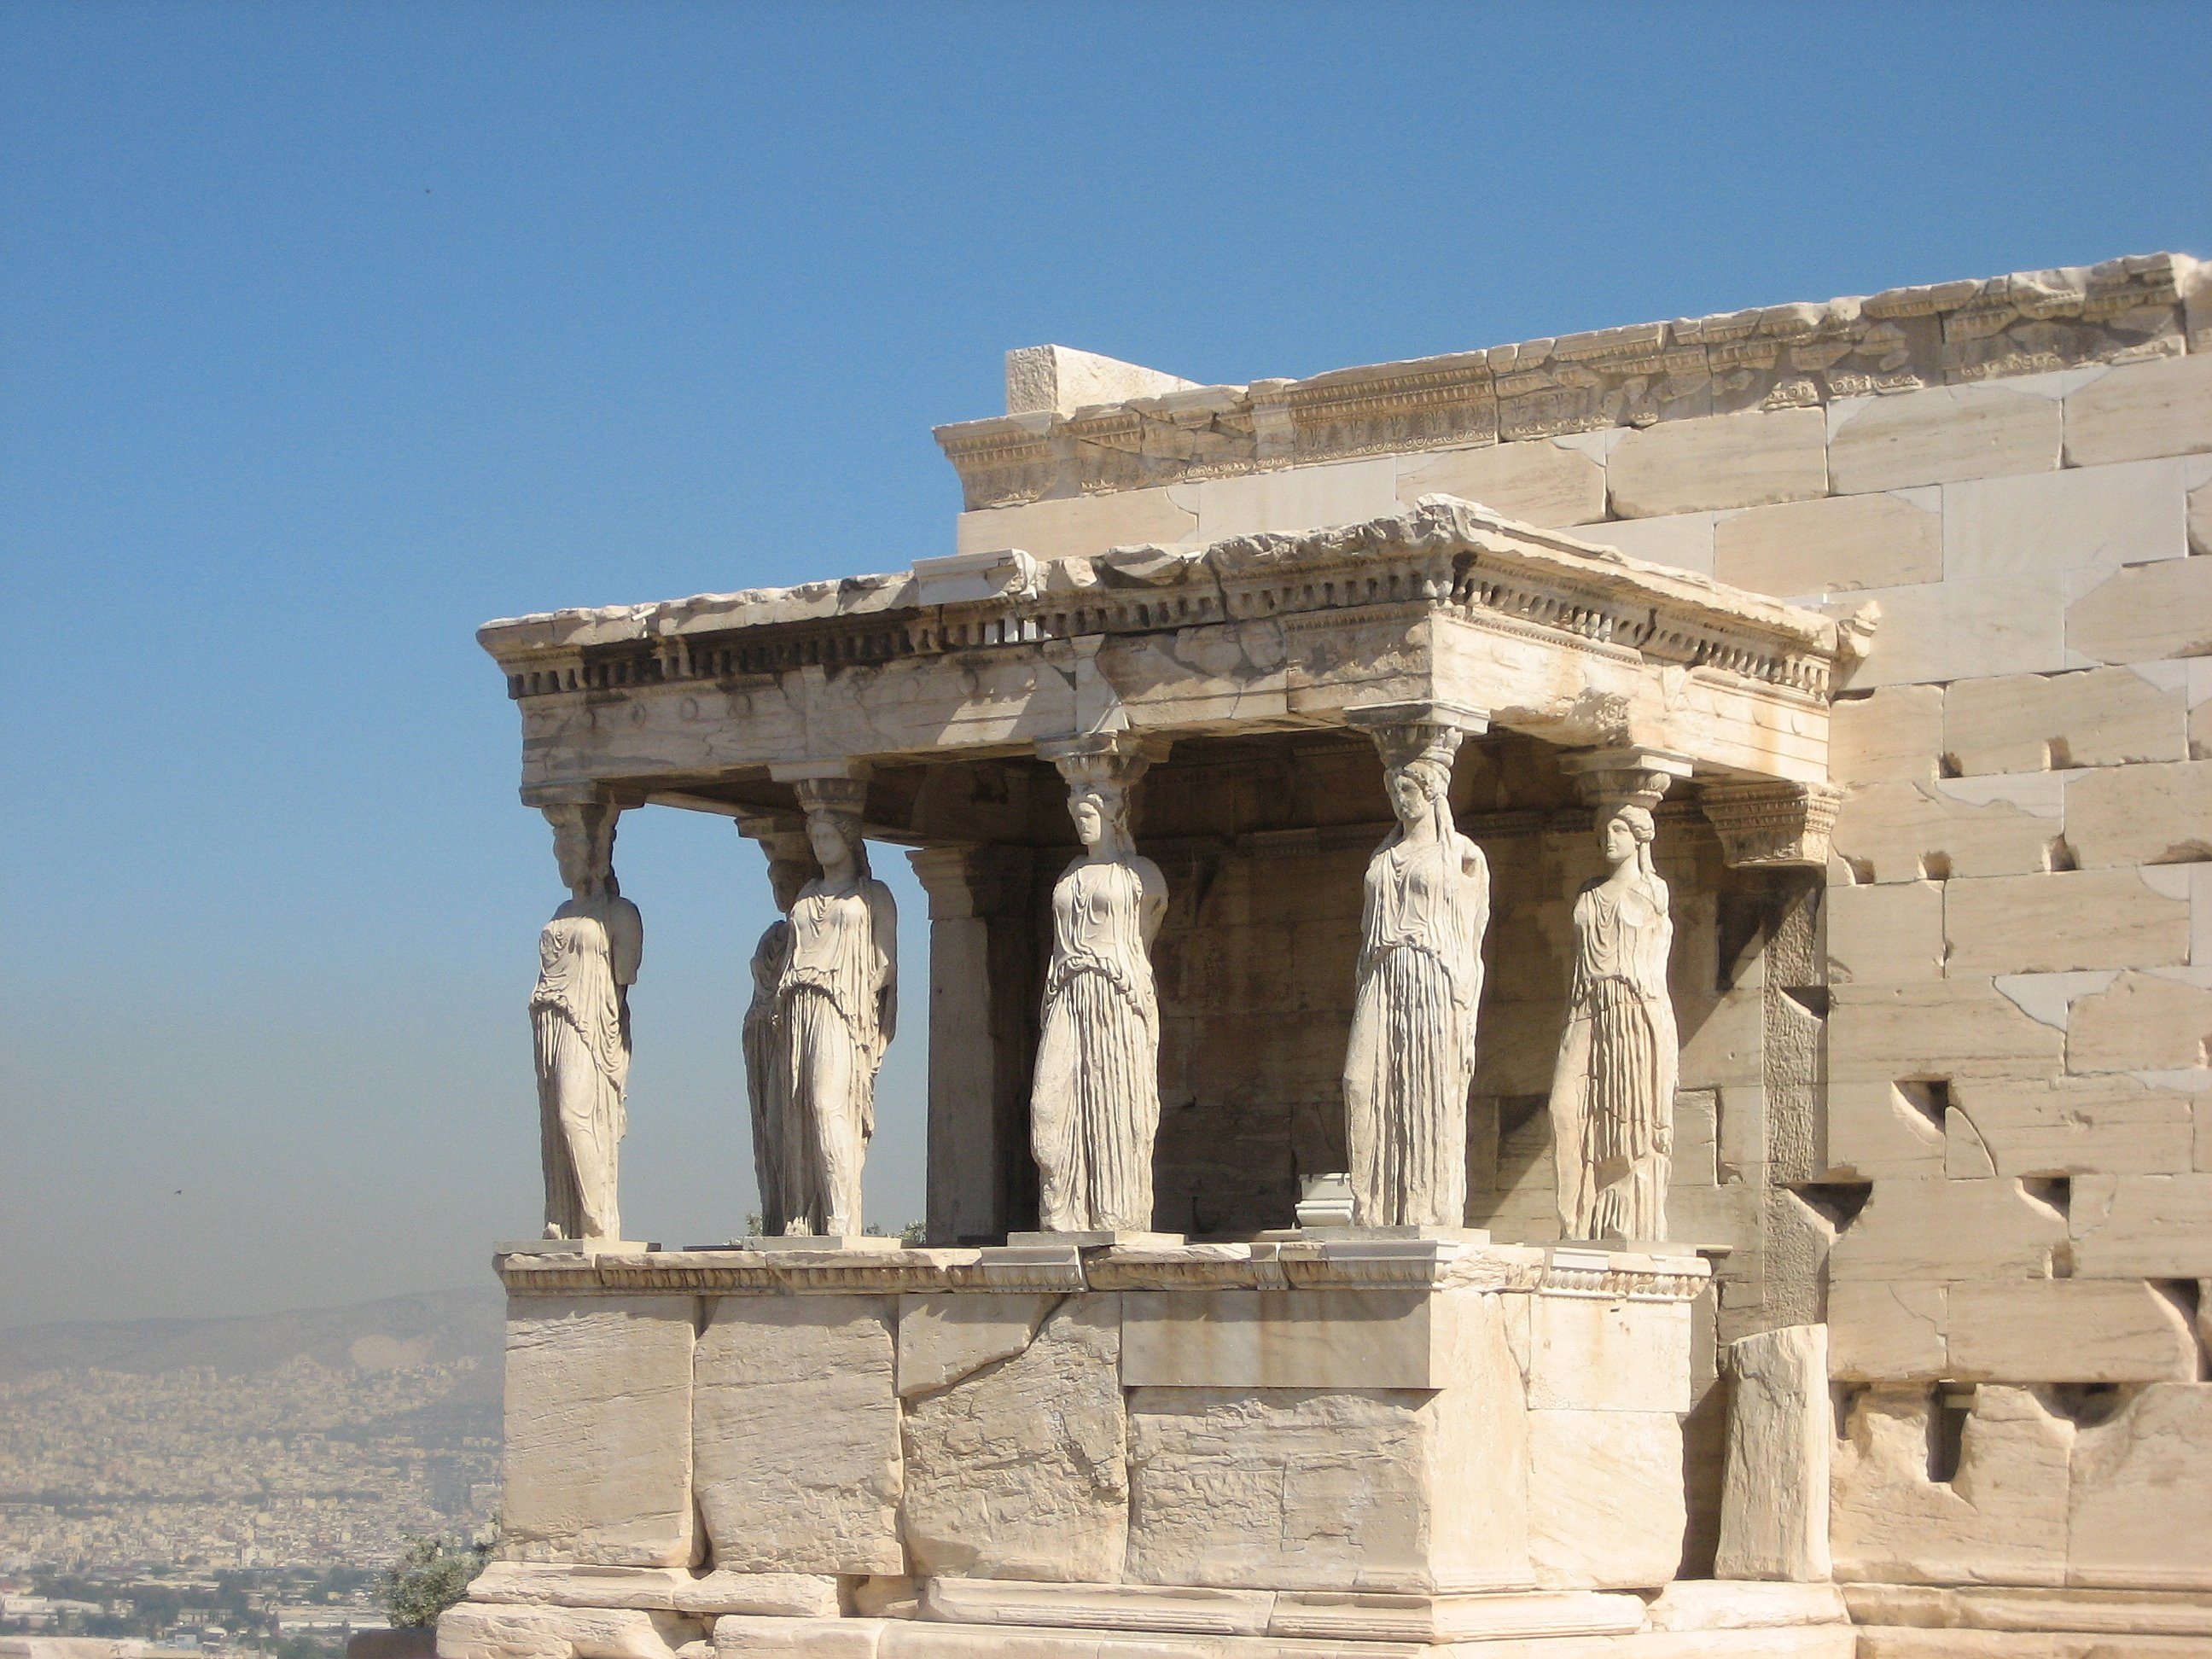 Photograph of the Caryatid Porch of the Erechtheion on the Acropolis in Athens, Greece